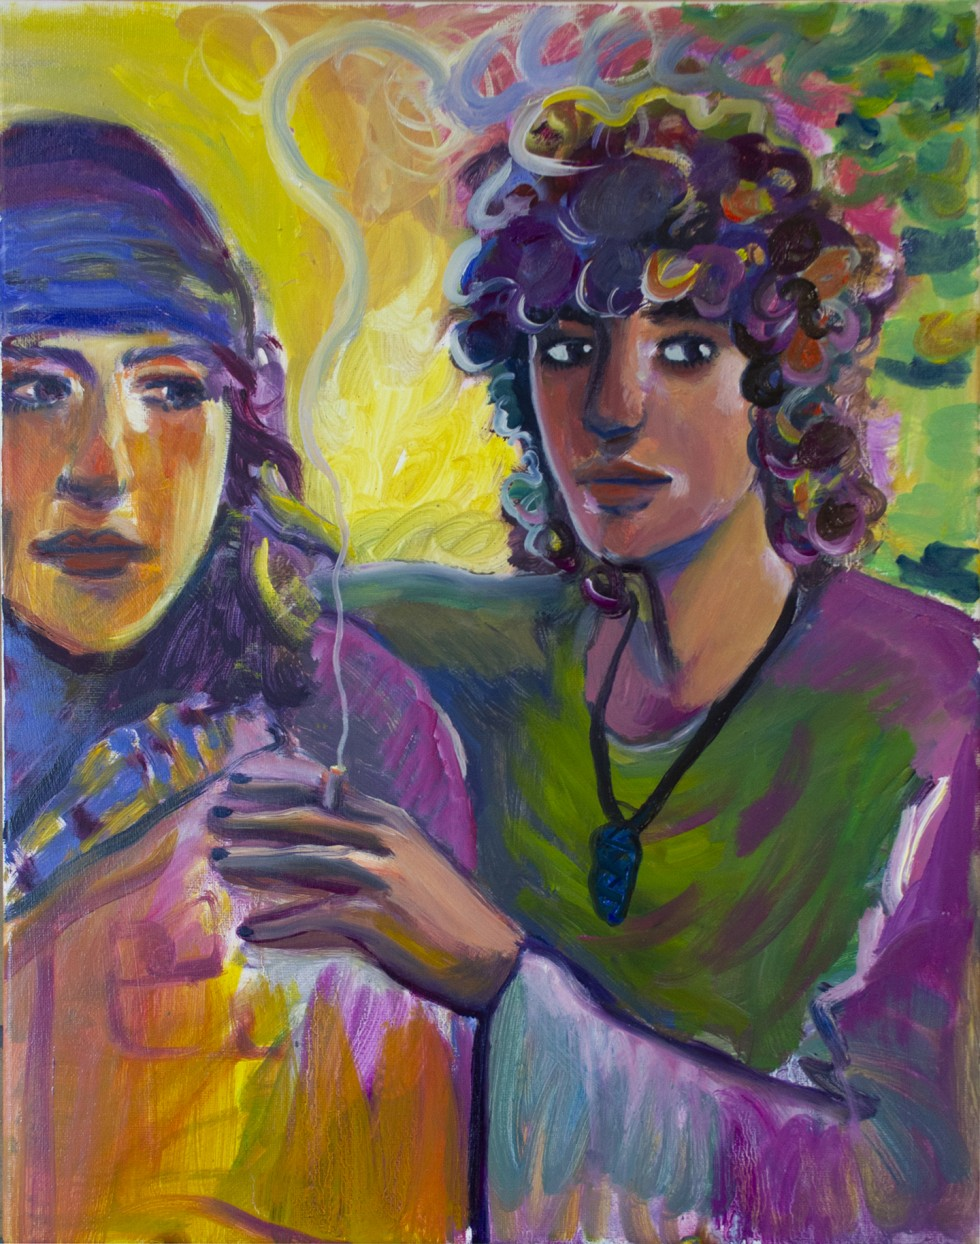 A painting of two people, one with their arm over the other, passing a cigarette, their eyes glancing off to the side. The smoke rises and curls between the two figures, and disperses into the background.